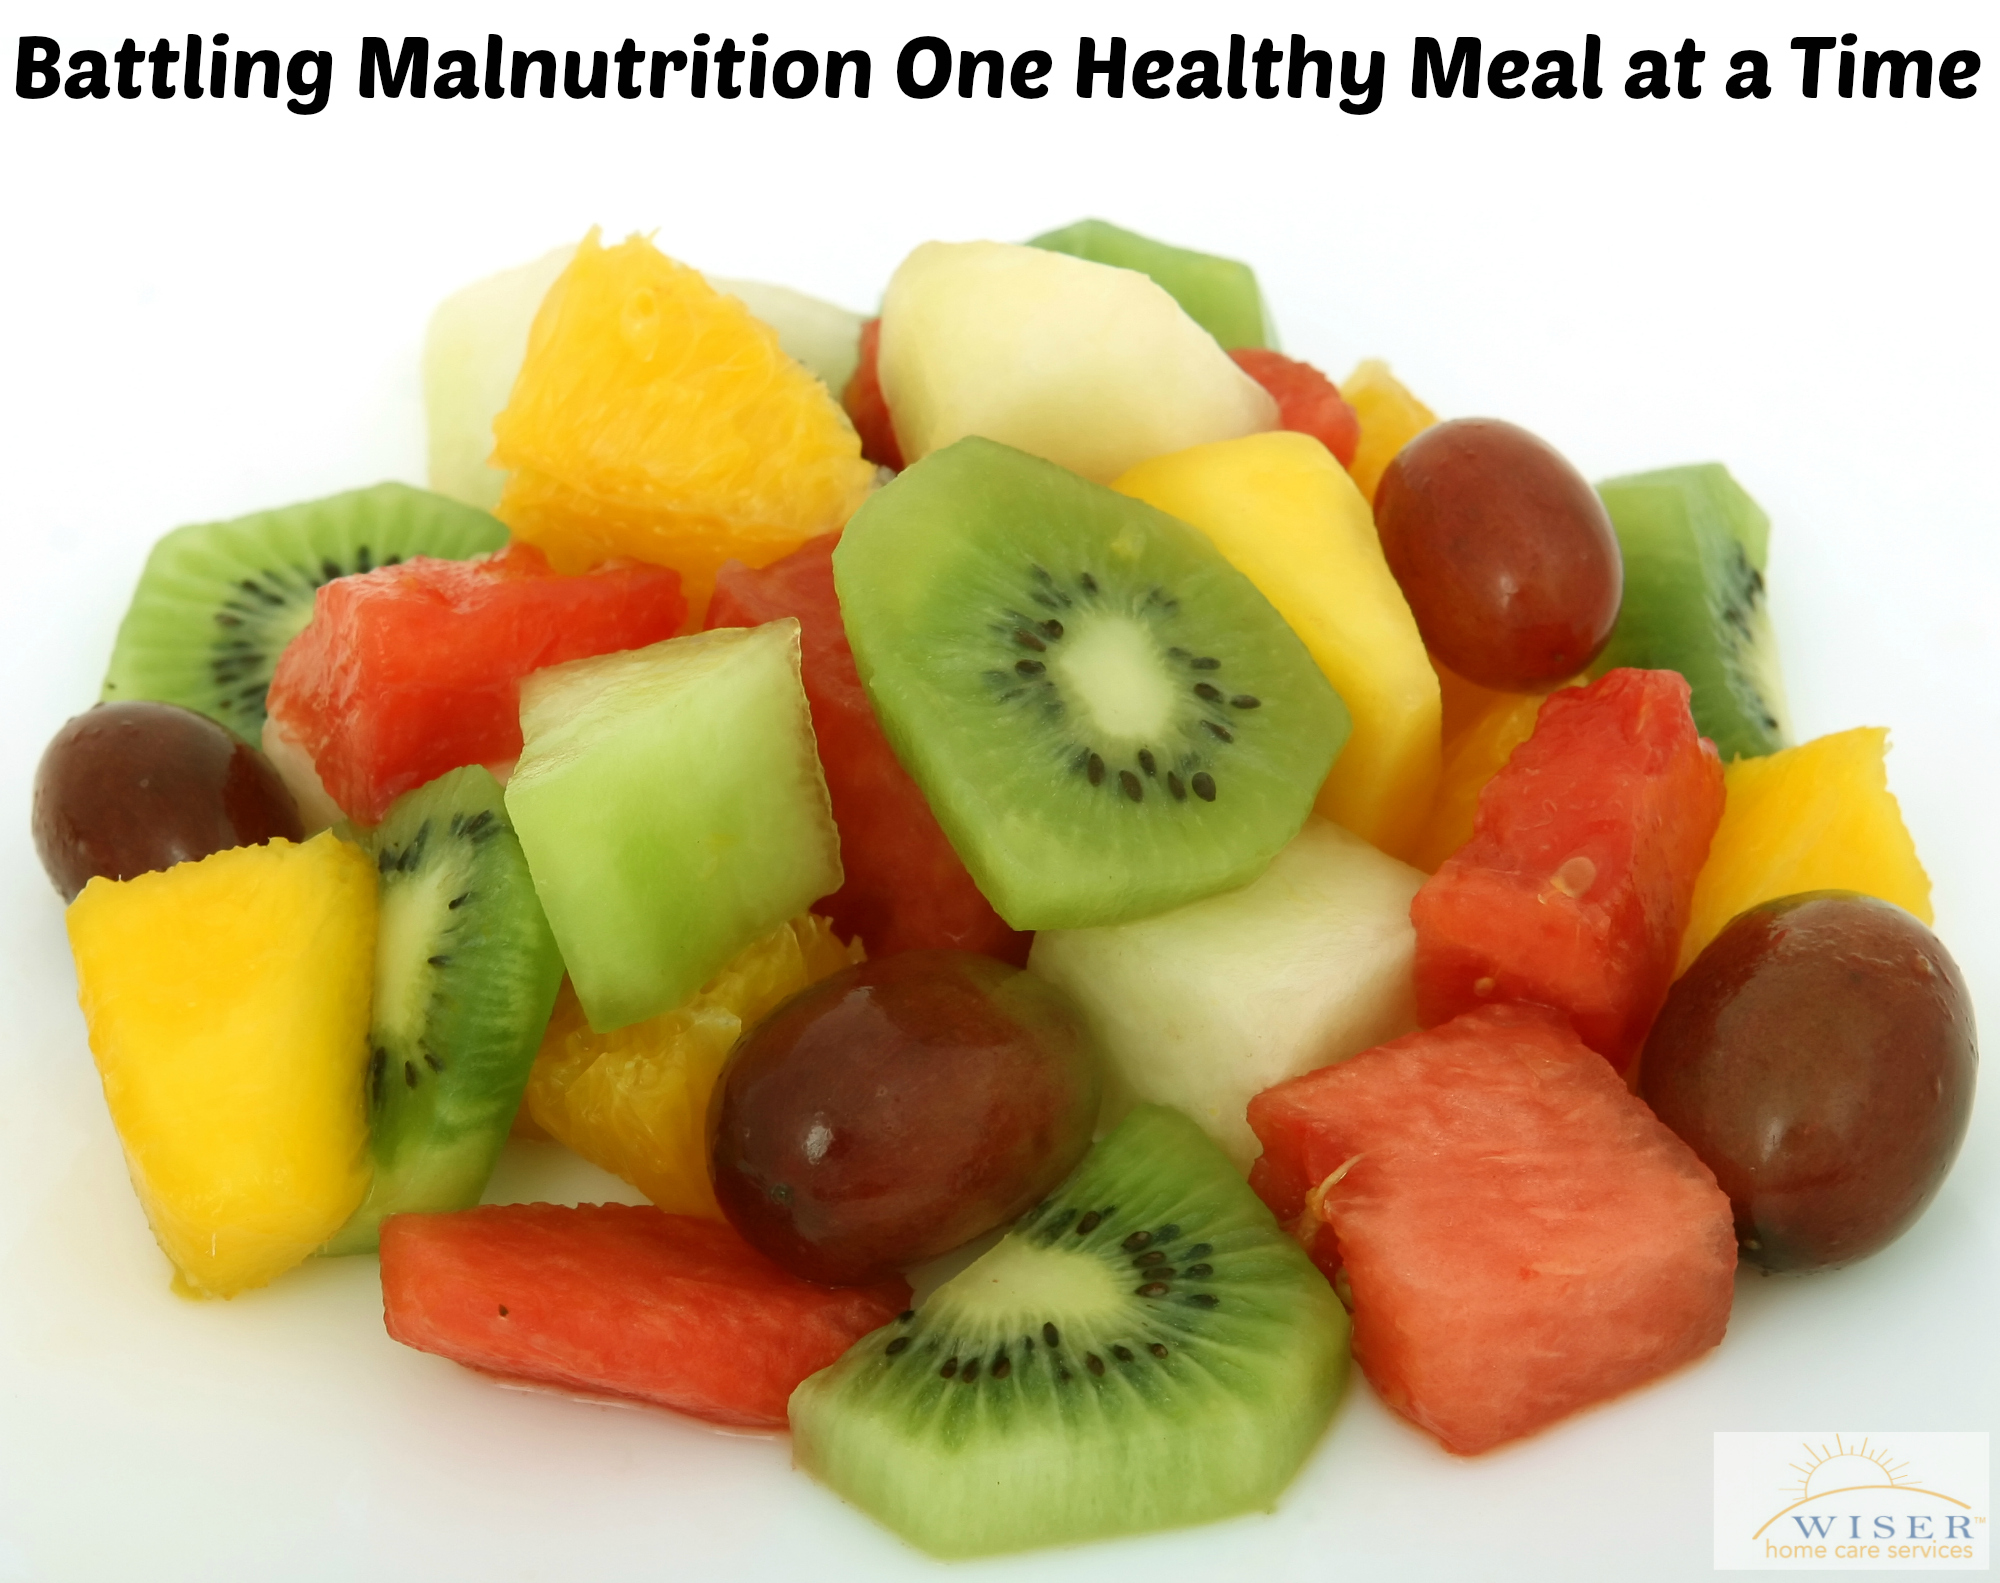 Malnutrition is a critical issue amongst the elderly. In this blog, Wiser Home Care lays out several ideas for meals and snacks to prevent malnutrition.